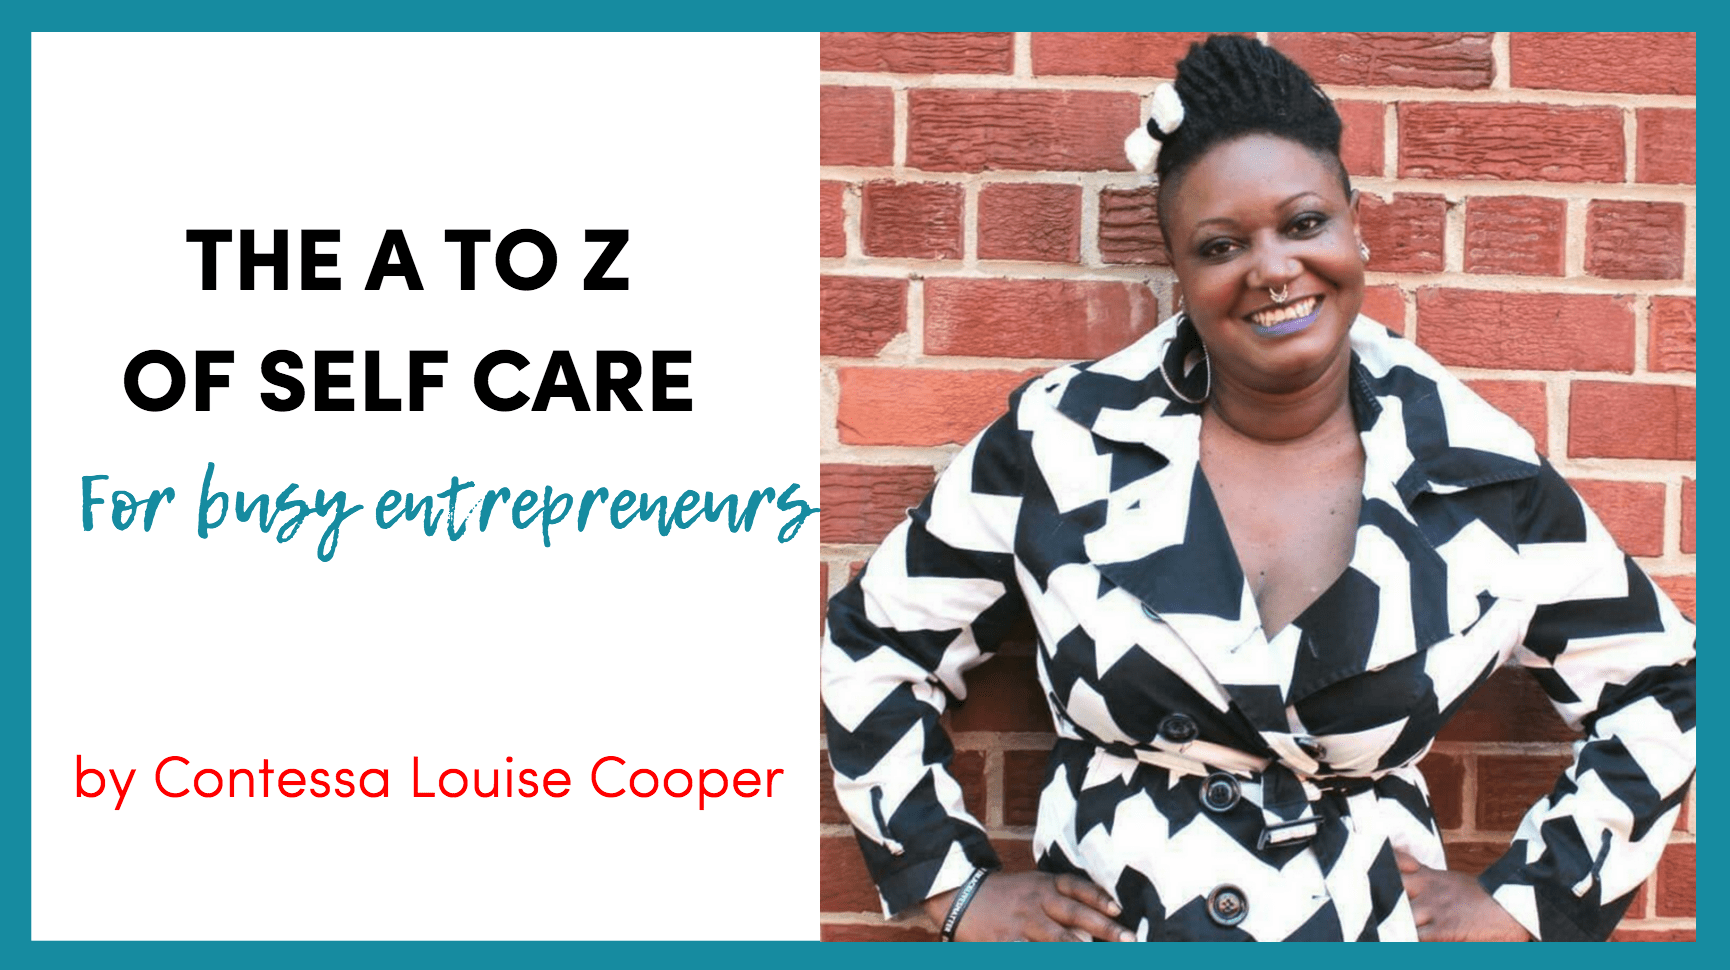 self care for busy entrepreneurs